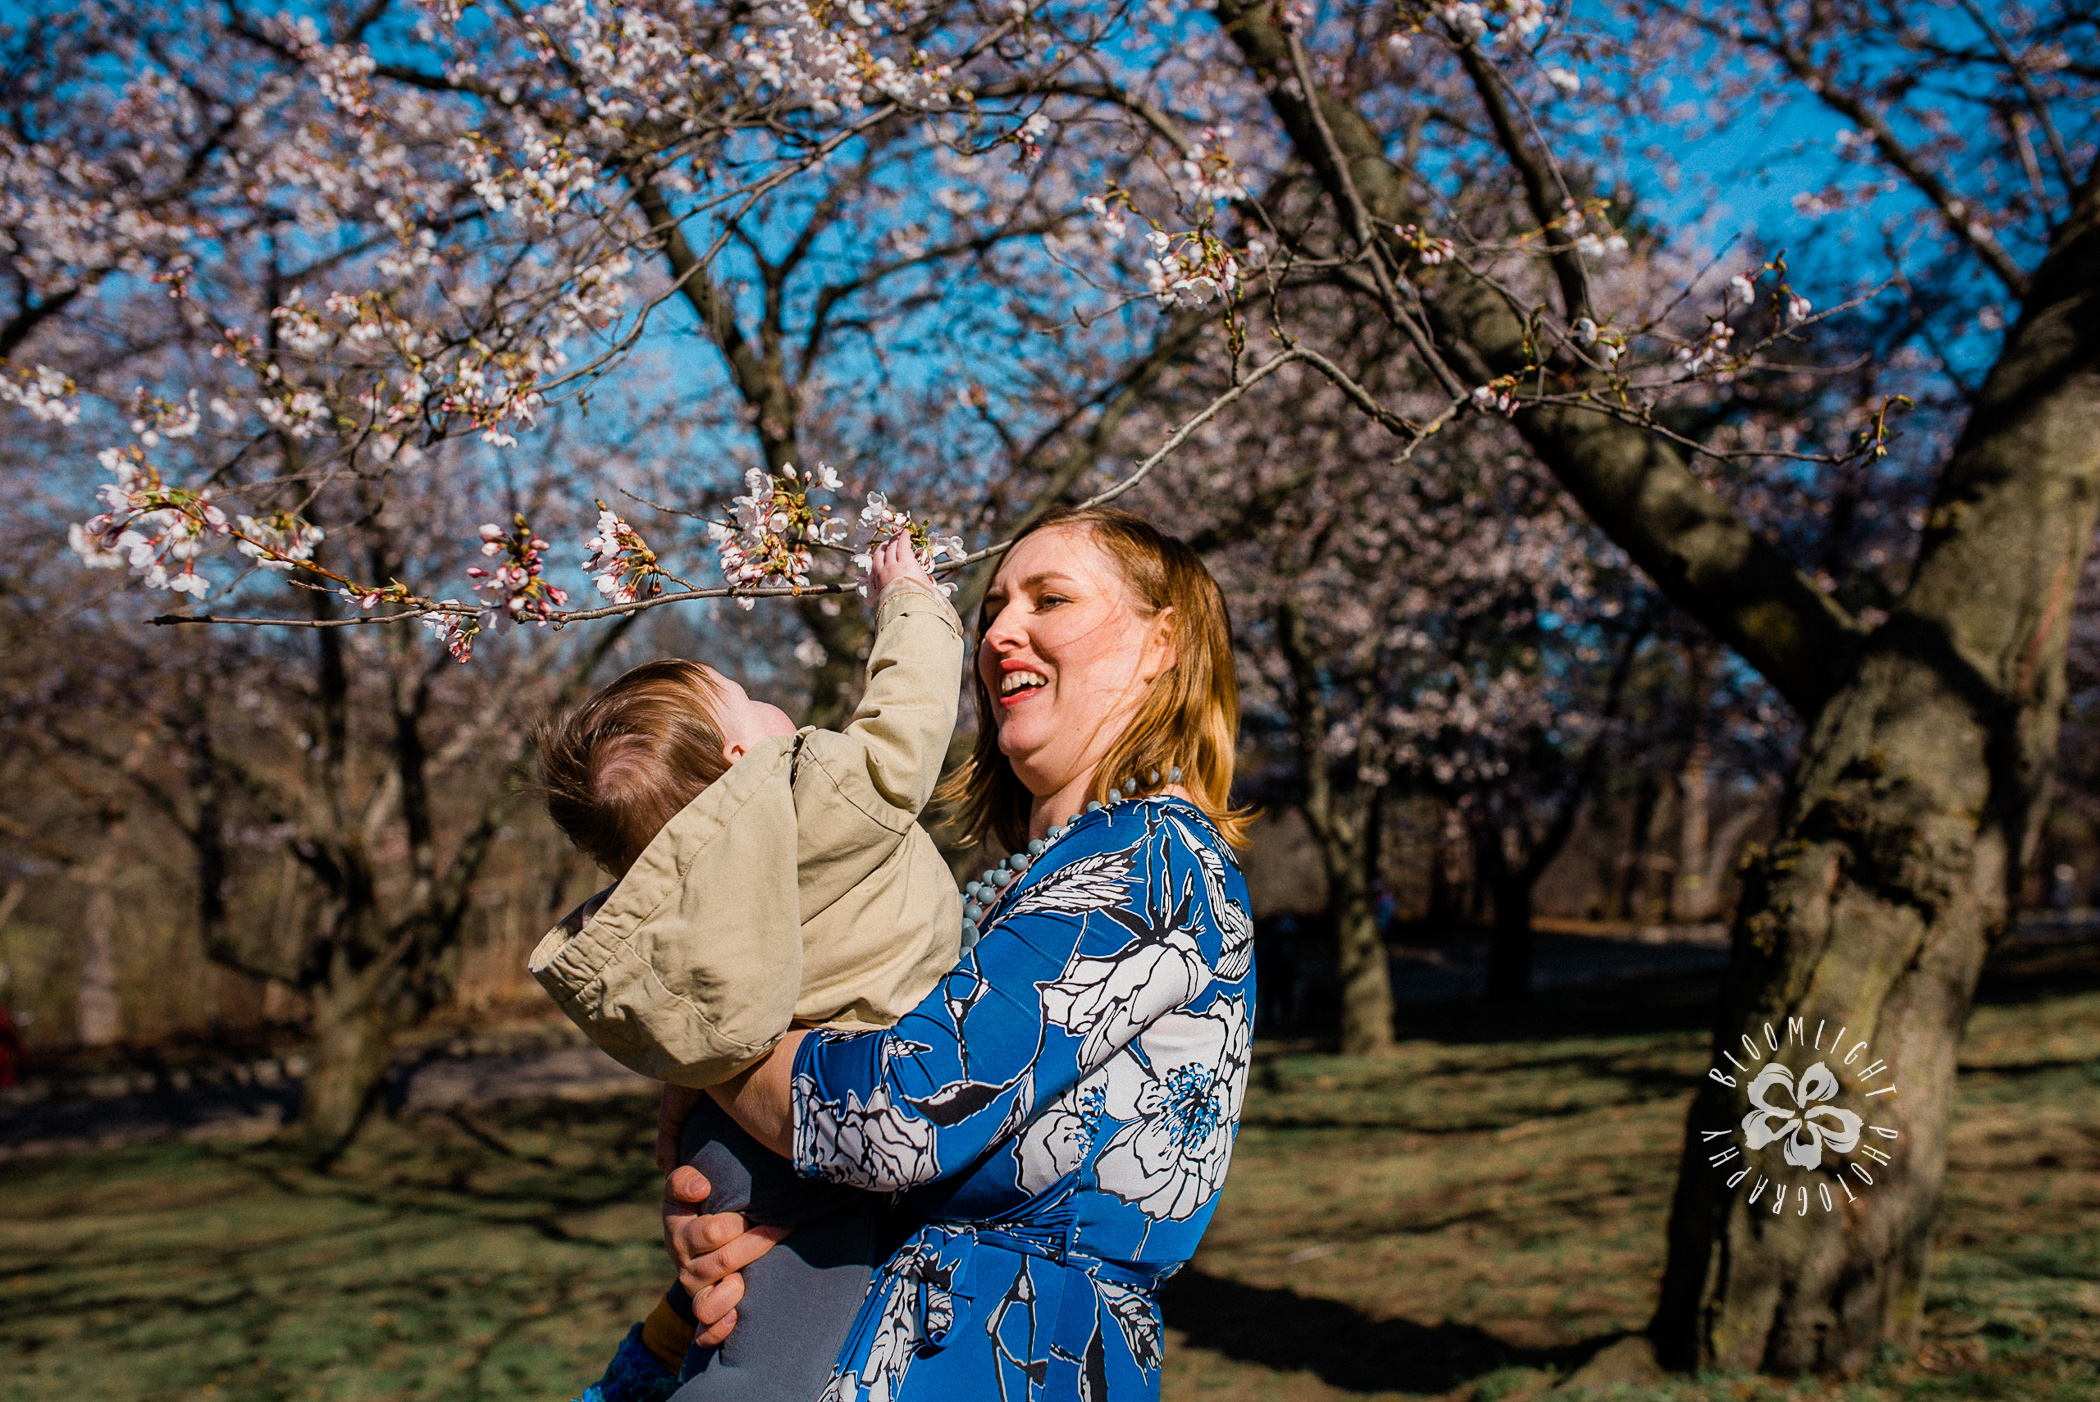 mothers-day-spring-cherry-blossom-Toronto-mommy-and-me-photo.JPG